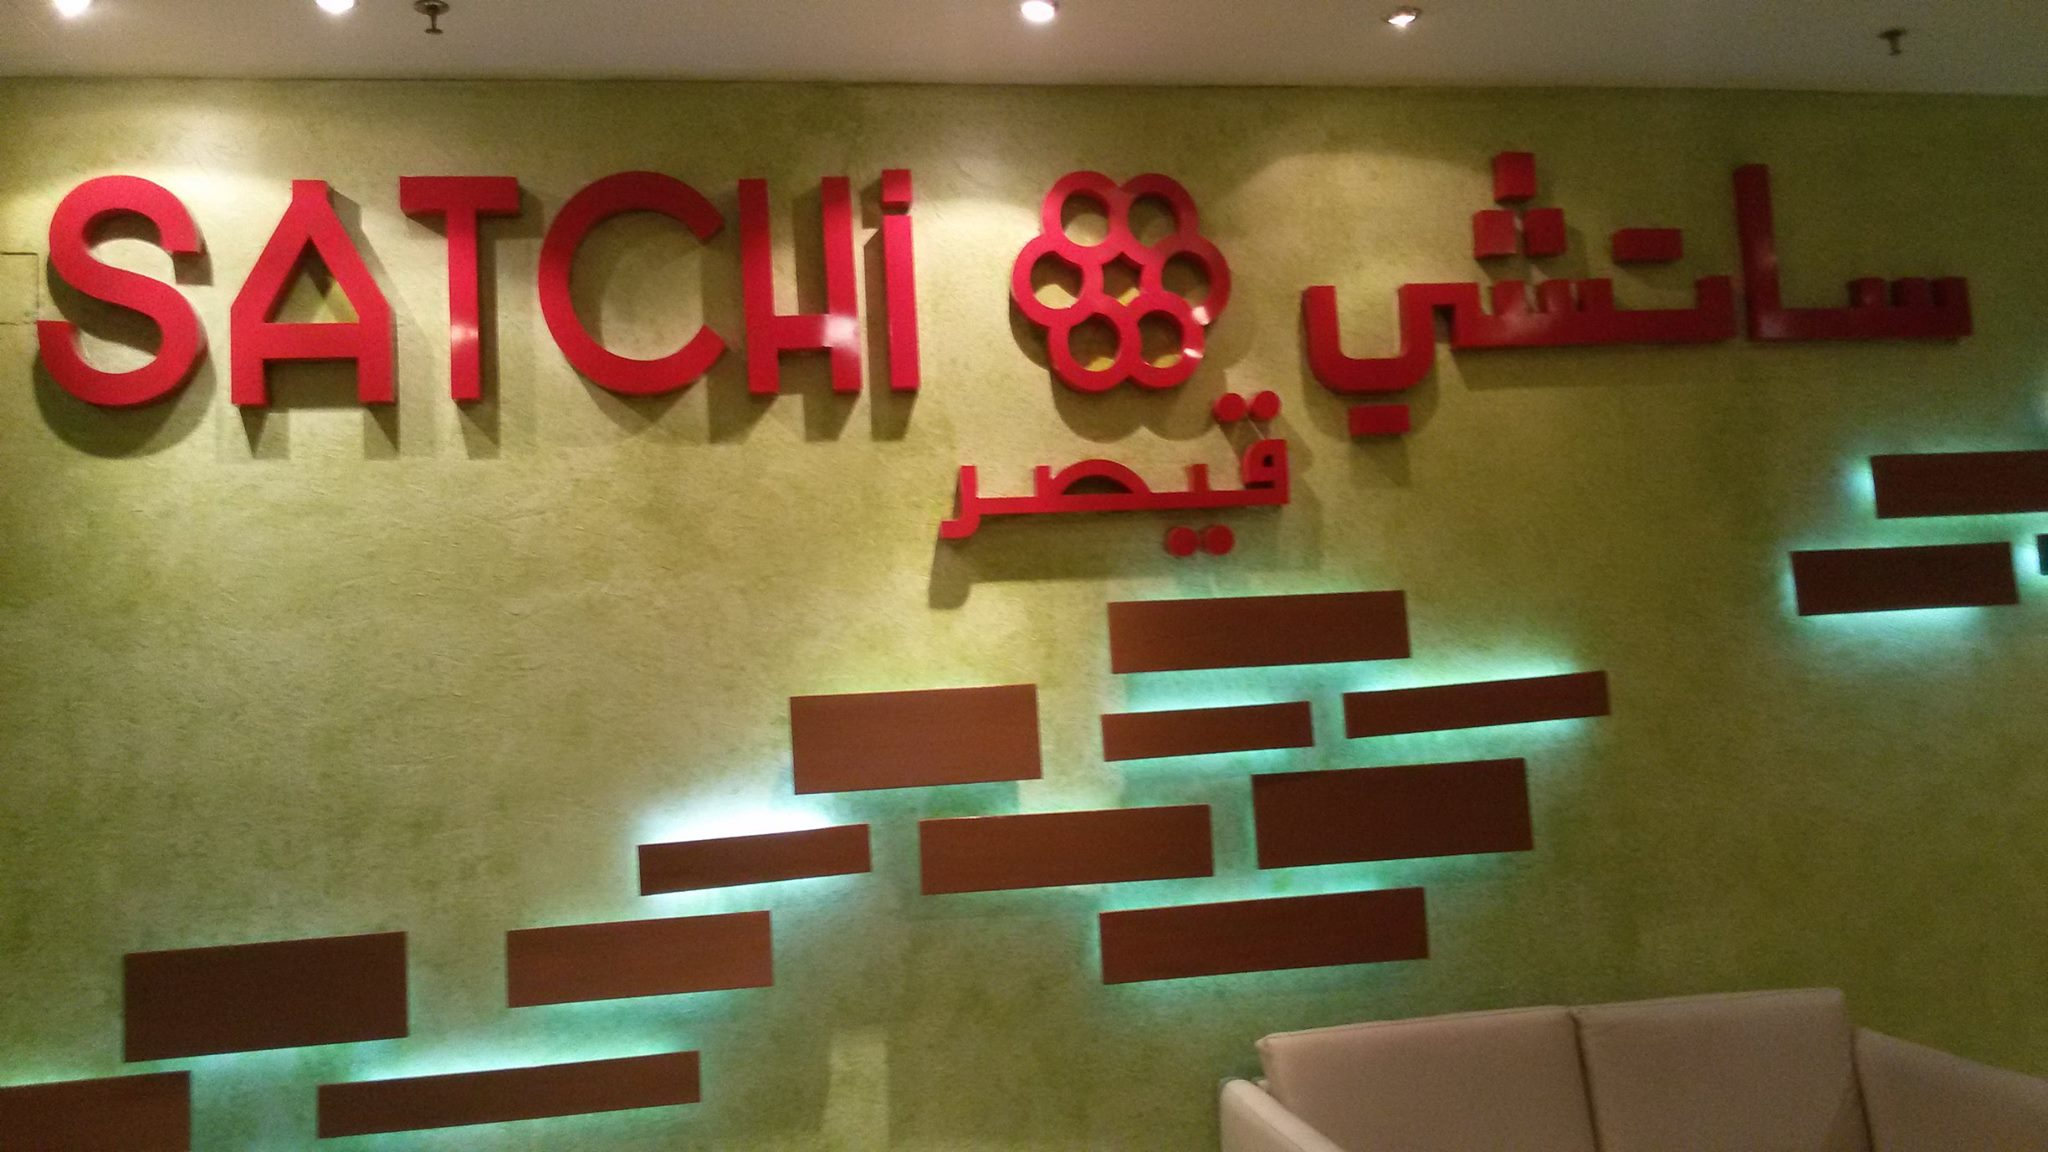 Satchi Caesar Restaurant, it's as Japanese as you can get.